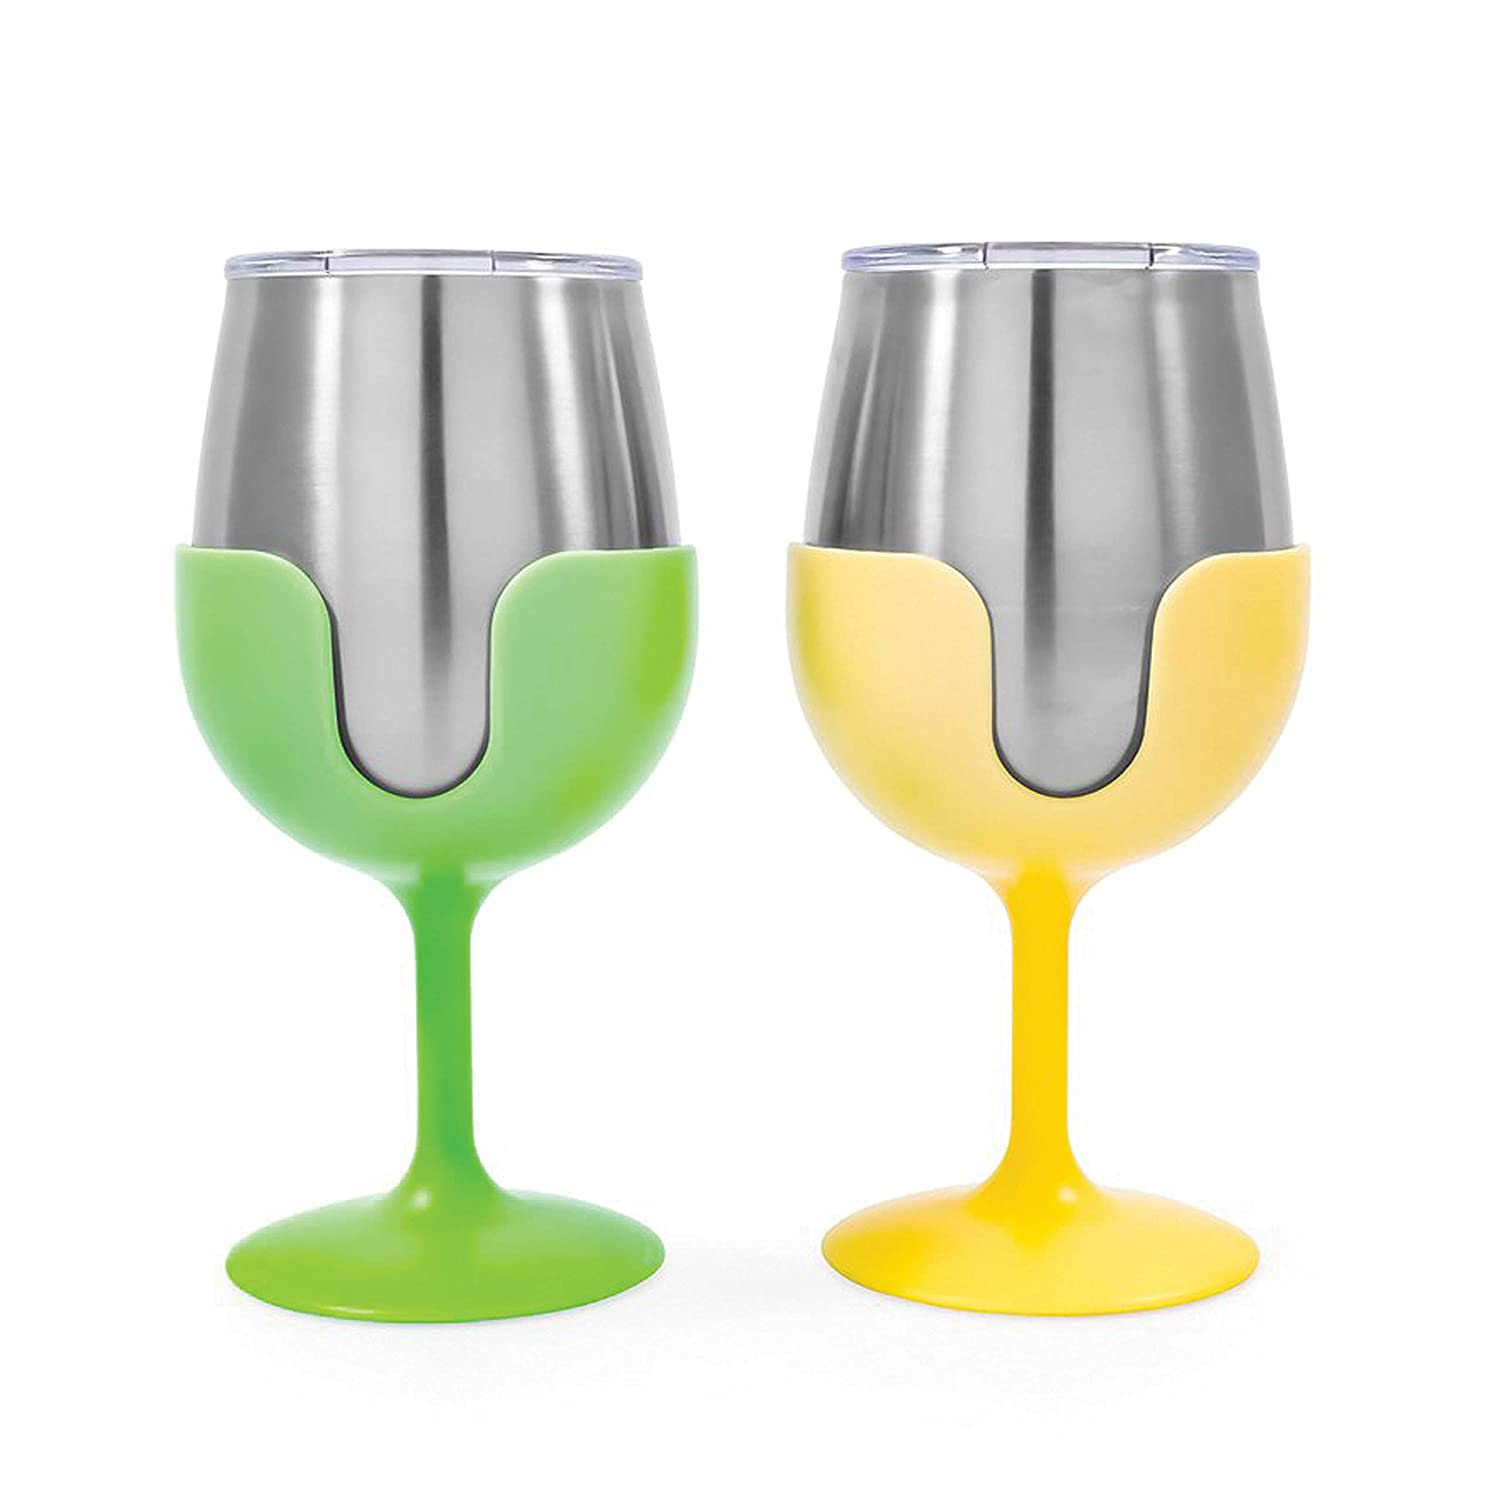 Camco 51916 Yellow and Green Stainless Steel Tumbler Set with Removable Bright Yellow and Lime Green Wine Glass Stems-Leak Proof Lid, 8 oz